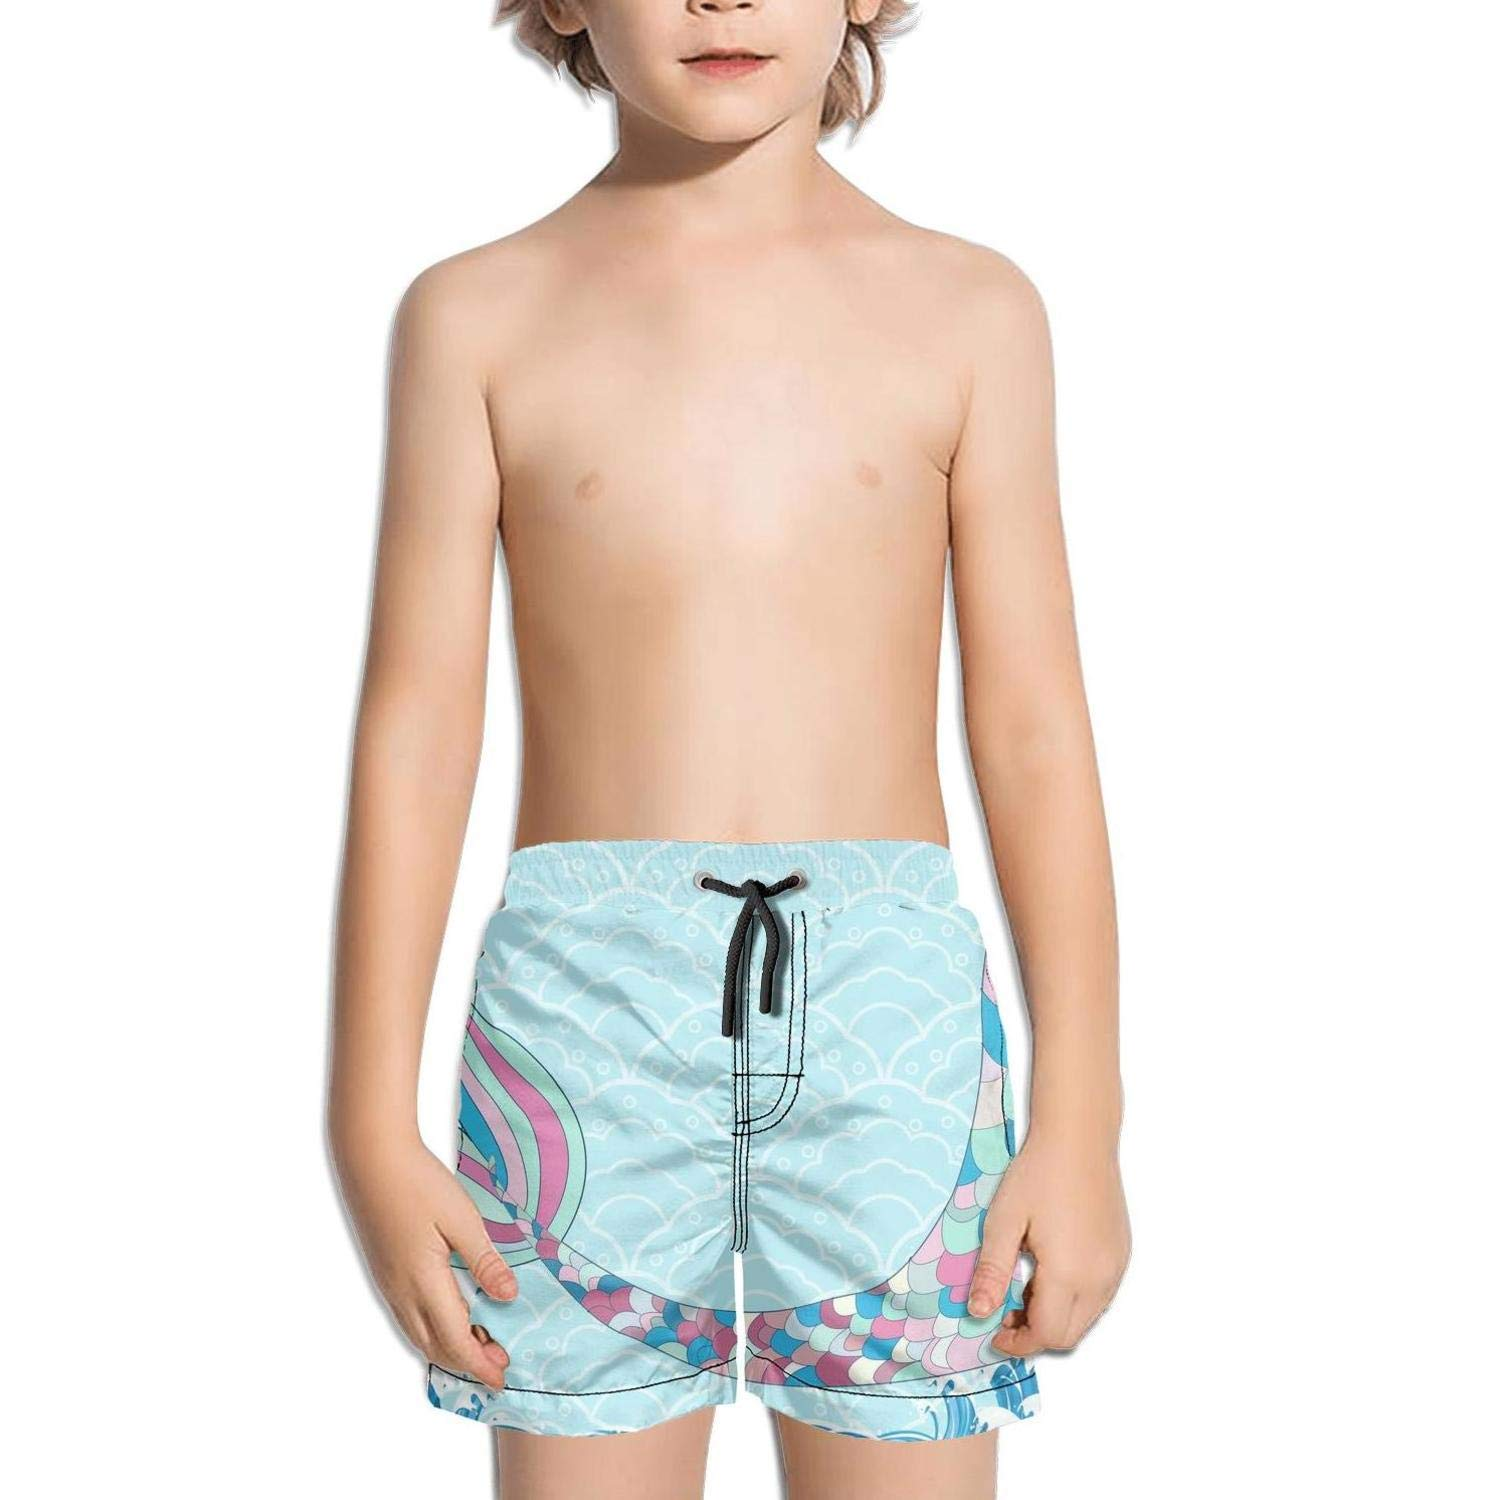 Etstk Mermaid Kids Quick Dry Beach Shorts for Men